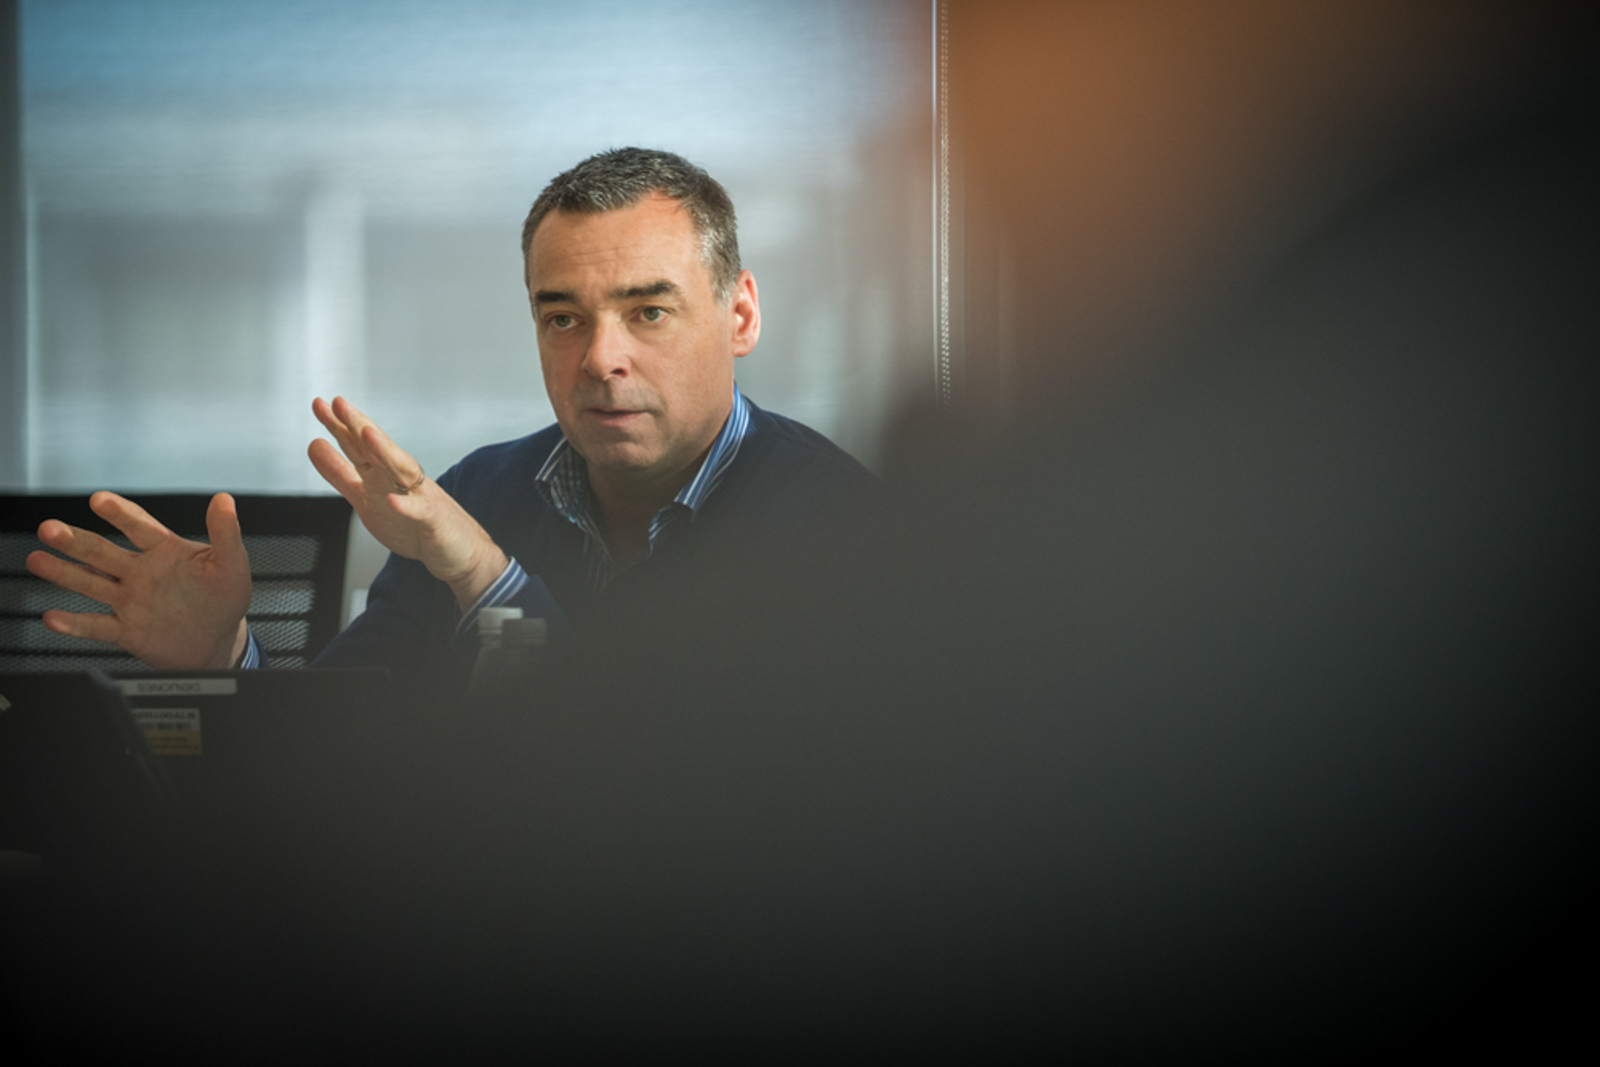 Partially covered business man, gesturing during meeting